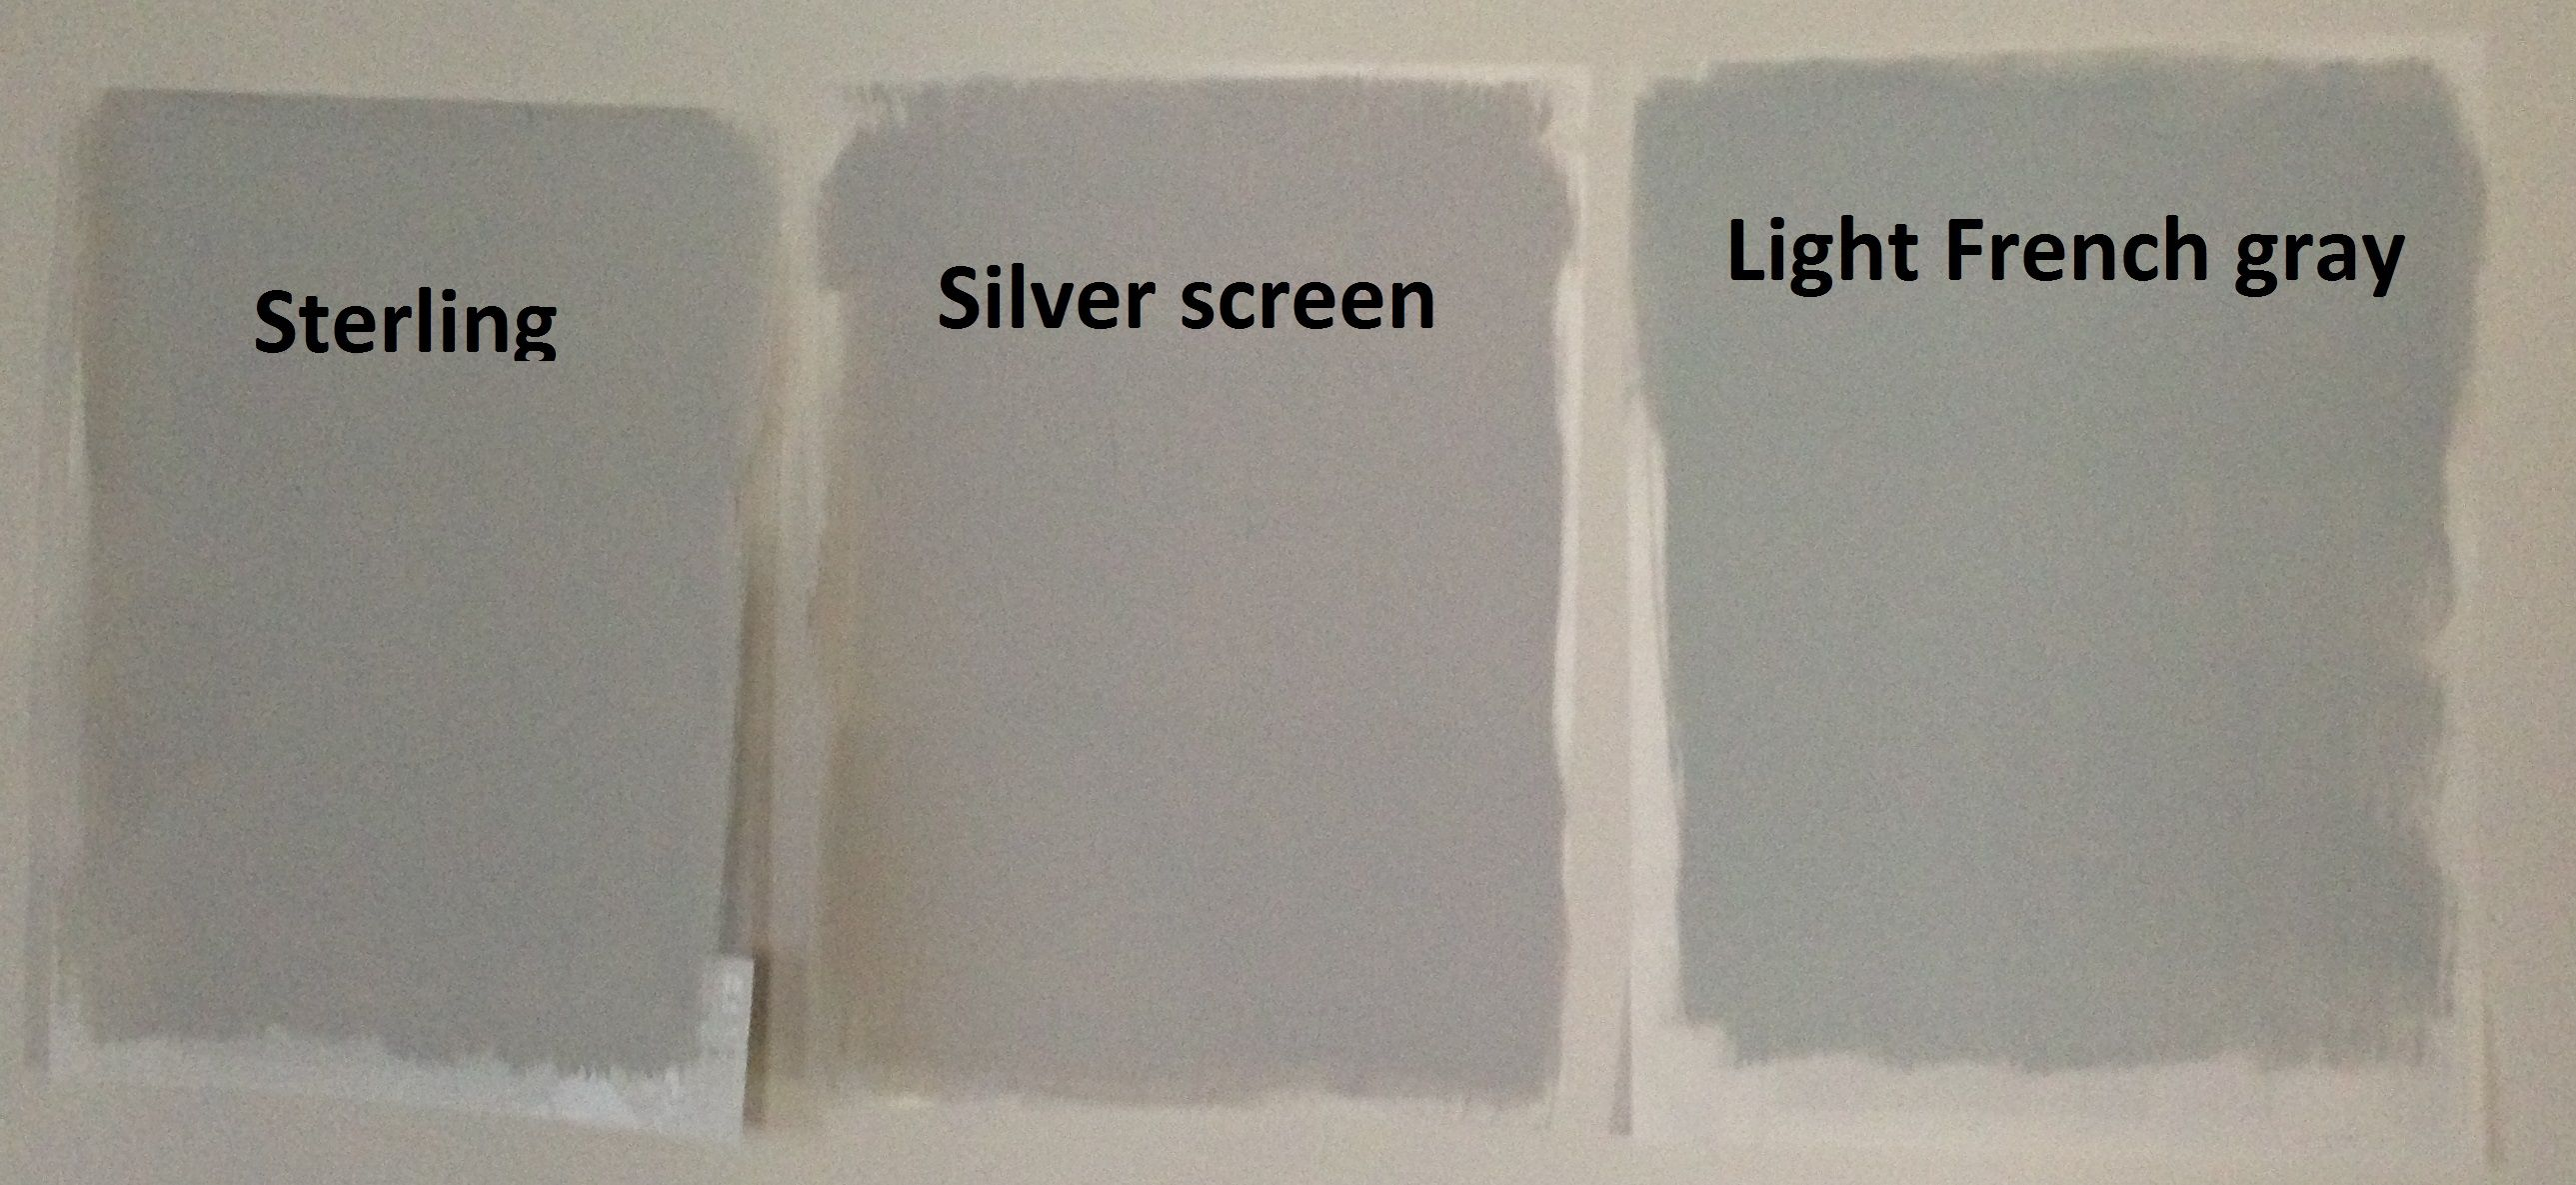 Behr light gray paints sterling silver screen and light for Light gray color swatch